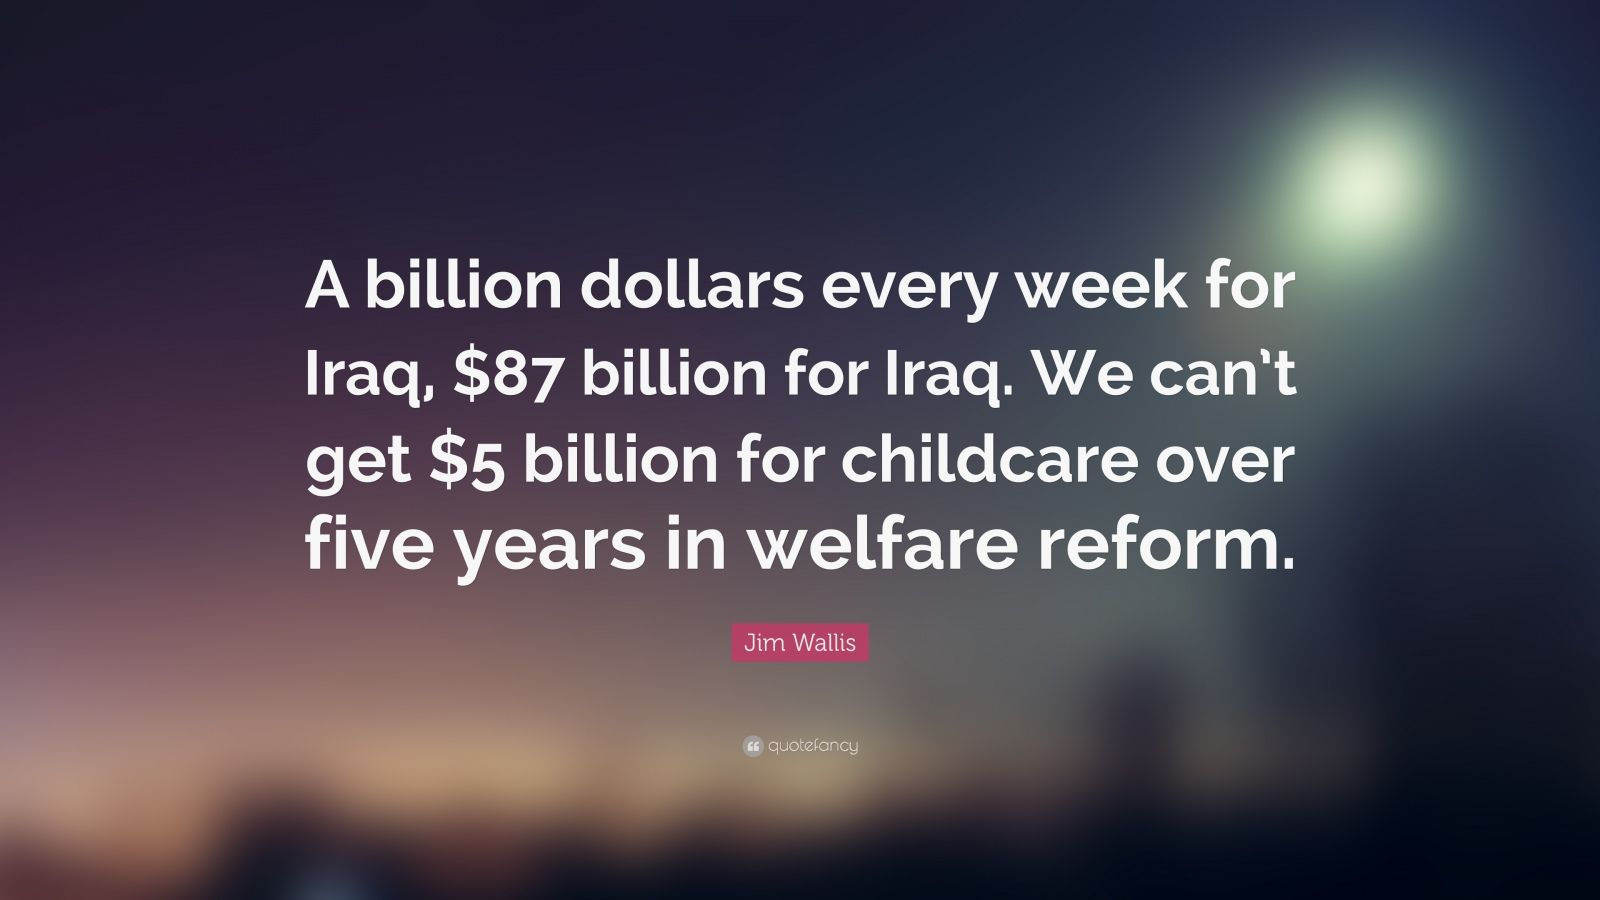 """Jim Wallis Quote: """"A billion dollars every week for Iraq, $87 billion for Iraq. We can't get $5 billion for childcare over five years in welfare reform."""""""